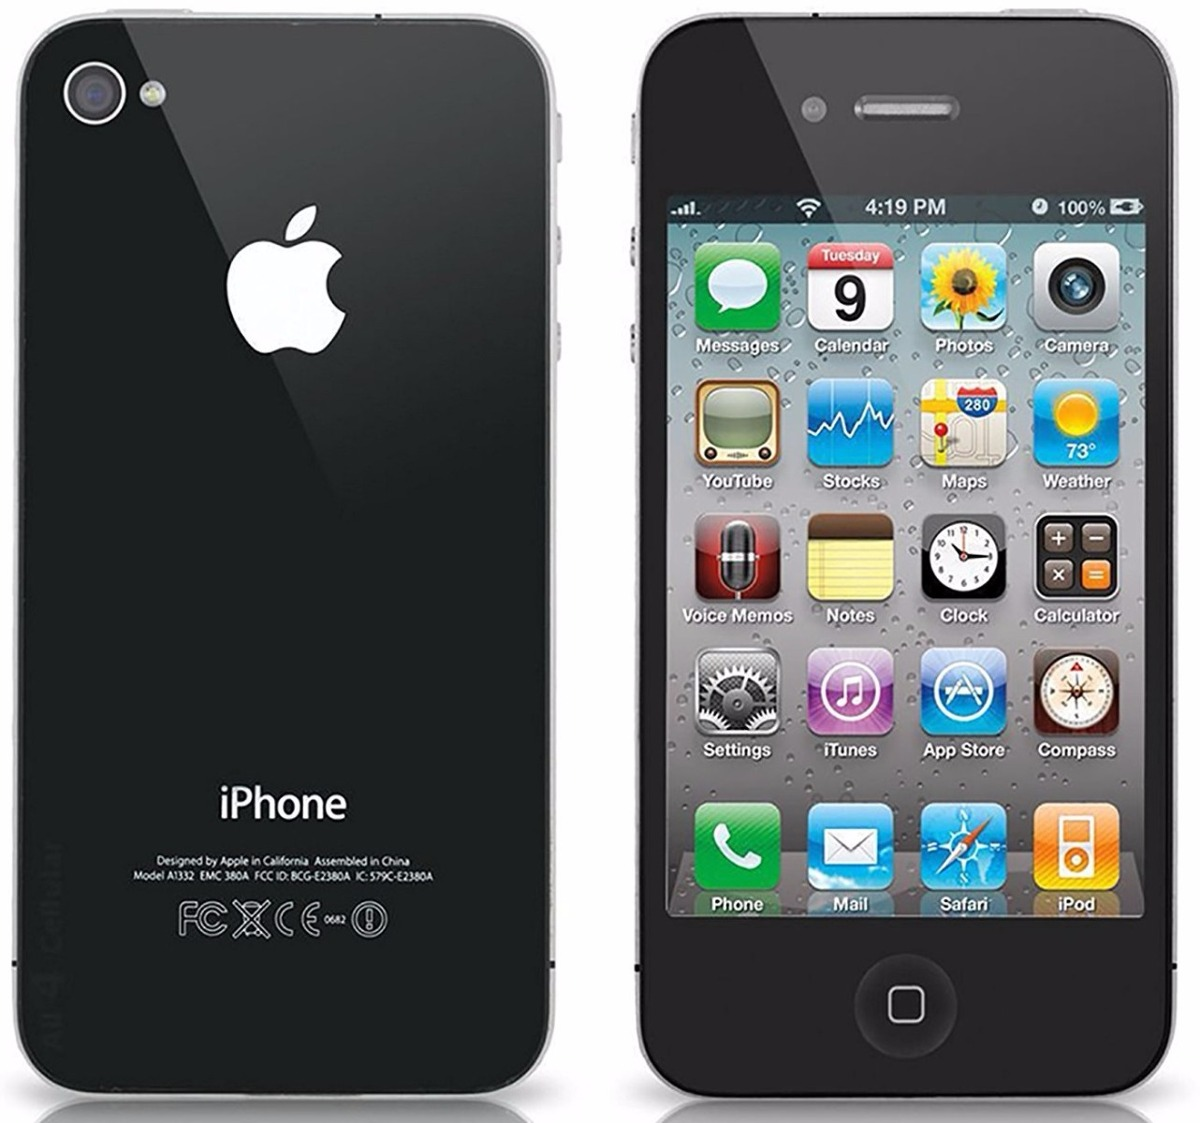 Venta De Moviles Libres Iphone Apple Iphone 4 A1332 512mb 8gb 699 000 En Mercado Libre